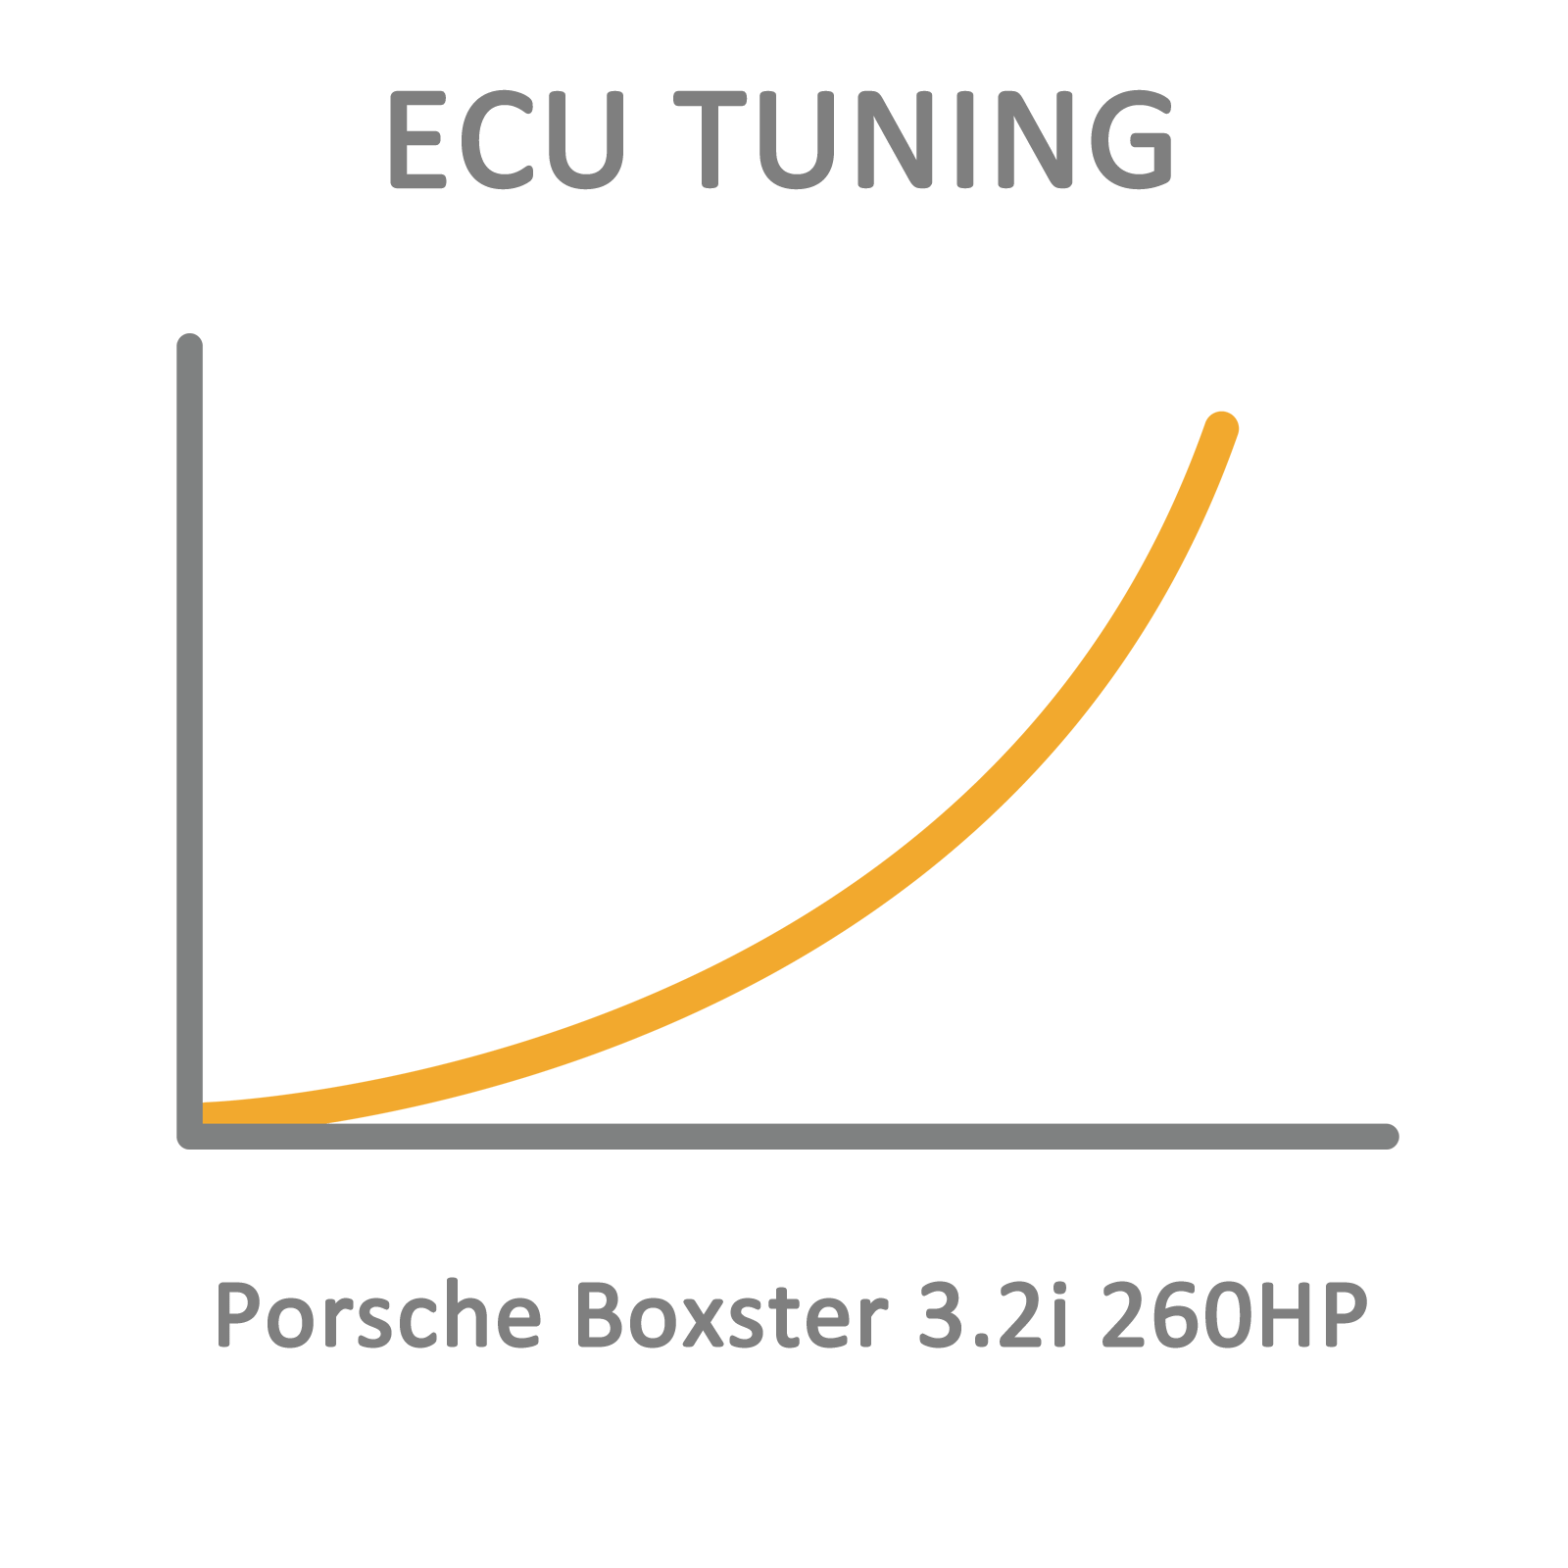 Porsche Boxster 3.2i 260HP ECU Tuning Remapping Programming